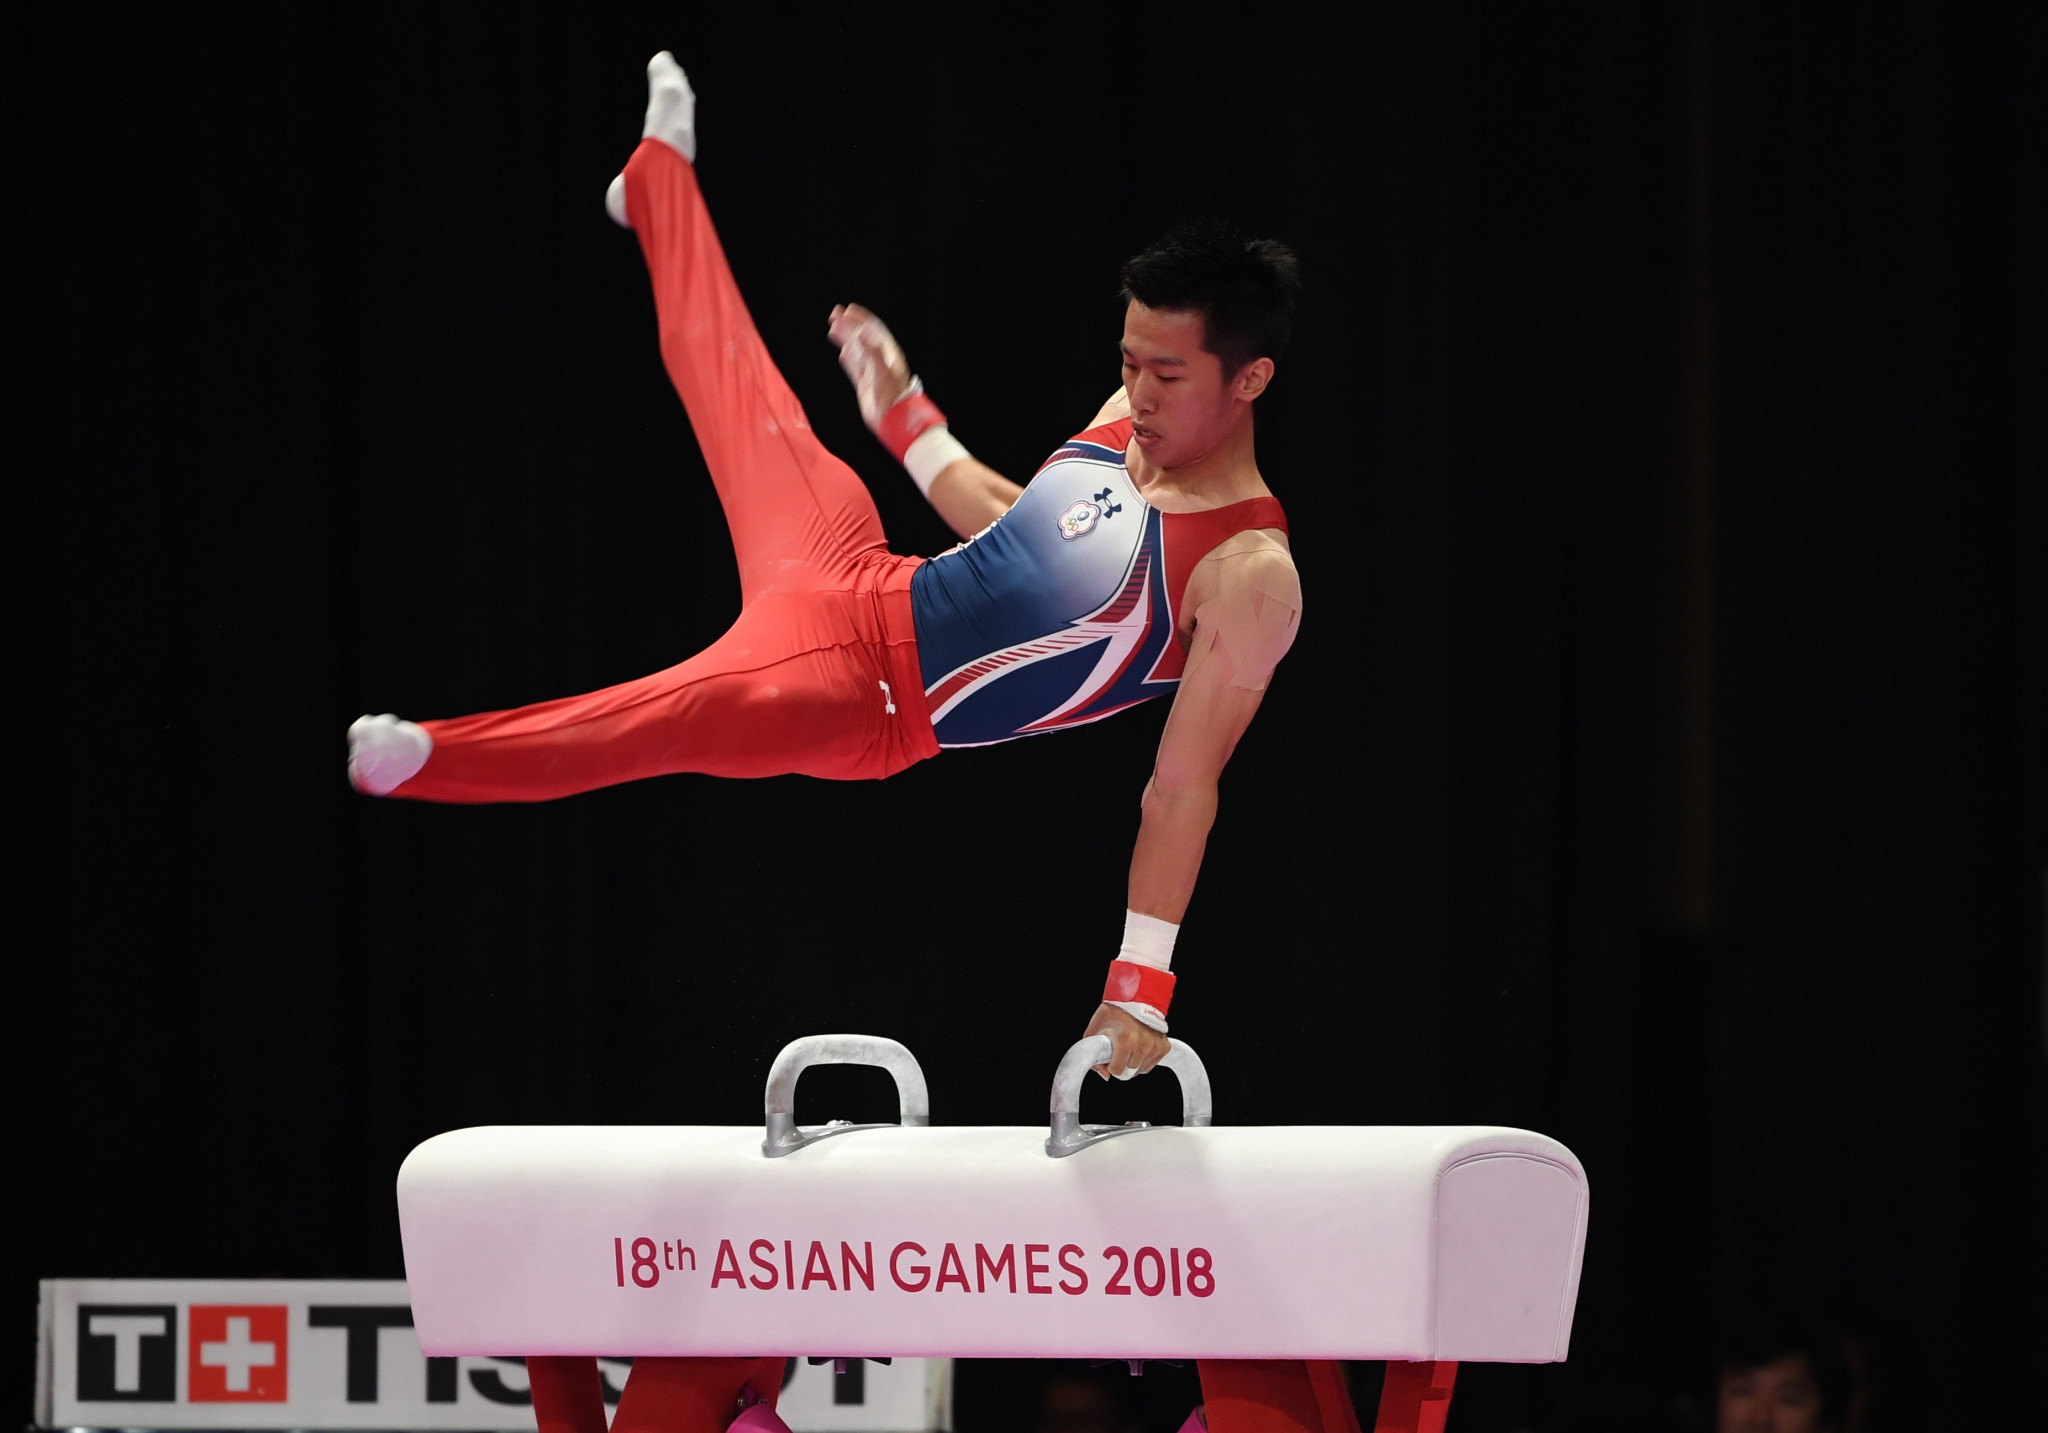 Chih Kai Lee won Chinese Taipei's first artistic gymnastics gold in Asian Games history ©Getty Images